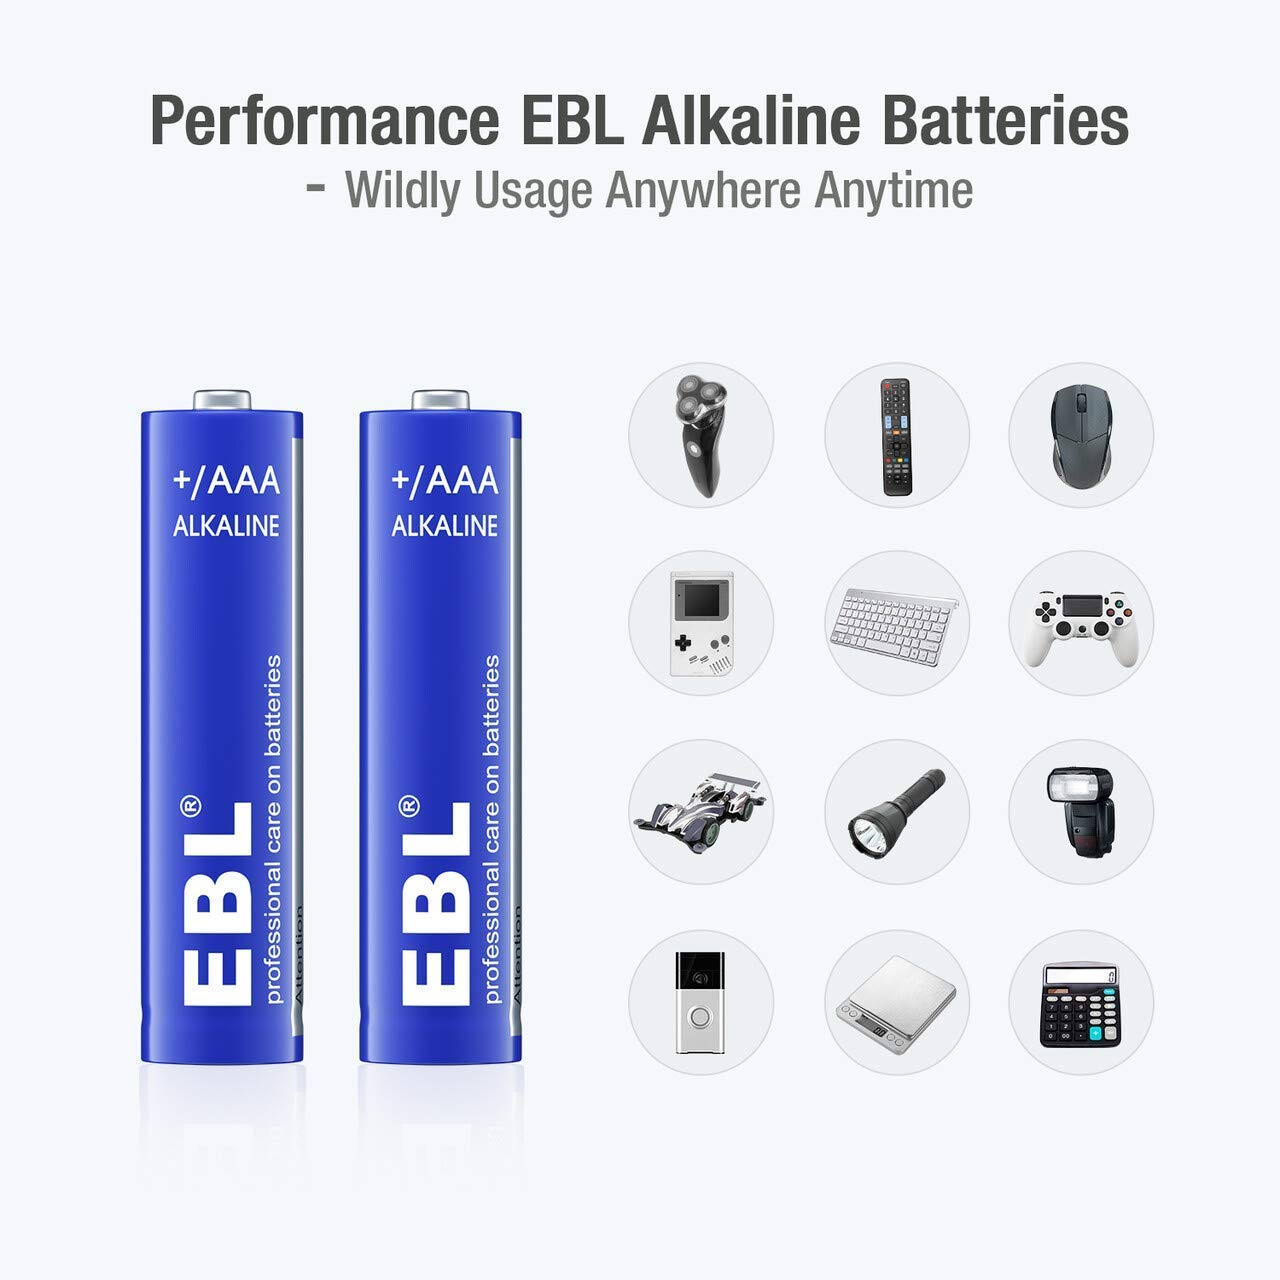 EBL Alkaline AAA Batteries (28 Count) - 1.5V Triple A Long-Lasting Alkaline Battery with 10-Year Shelf Life